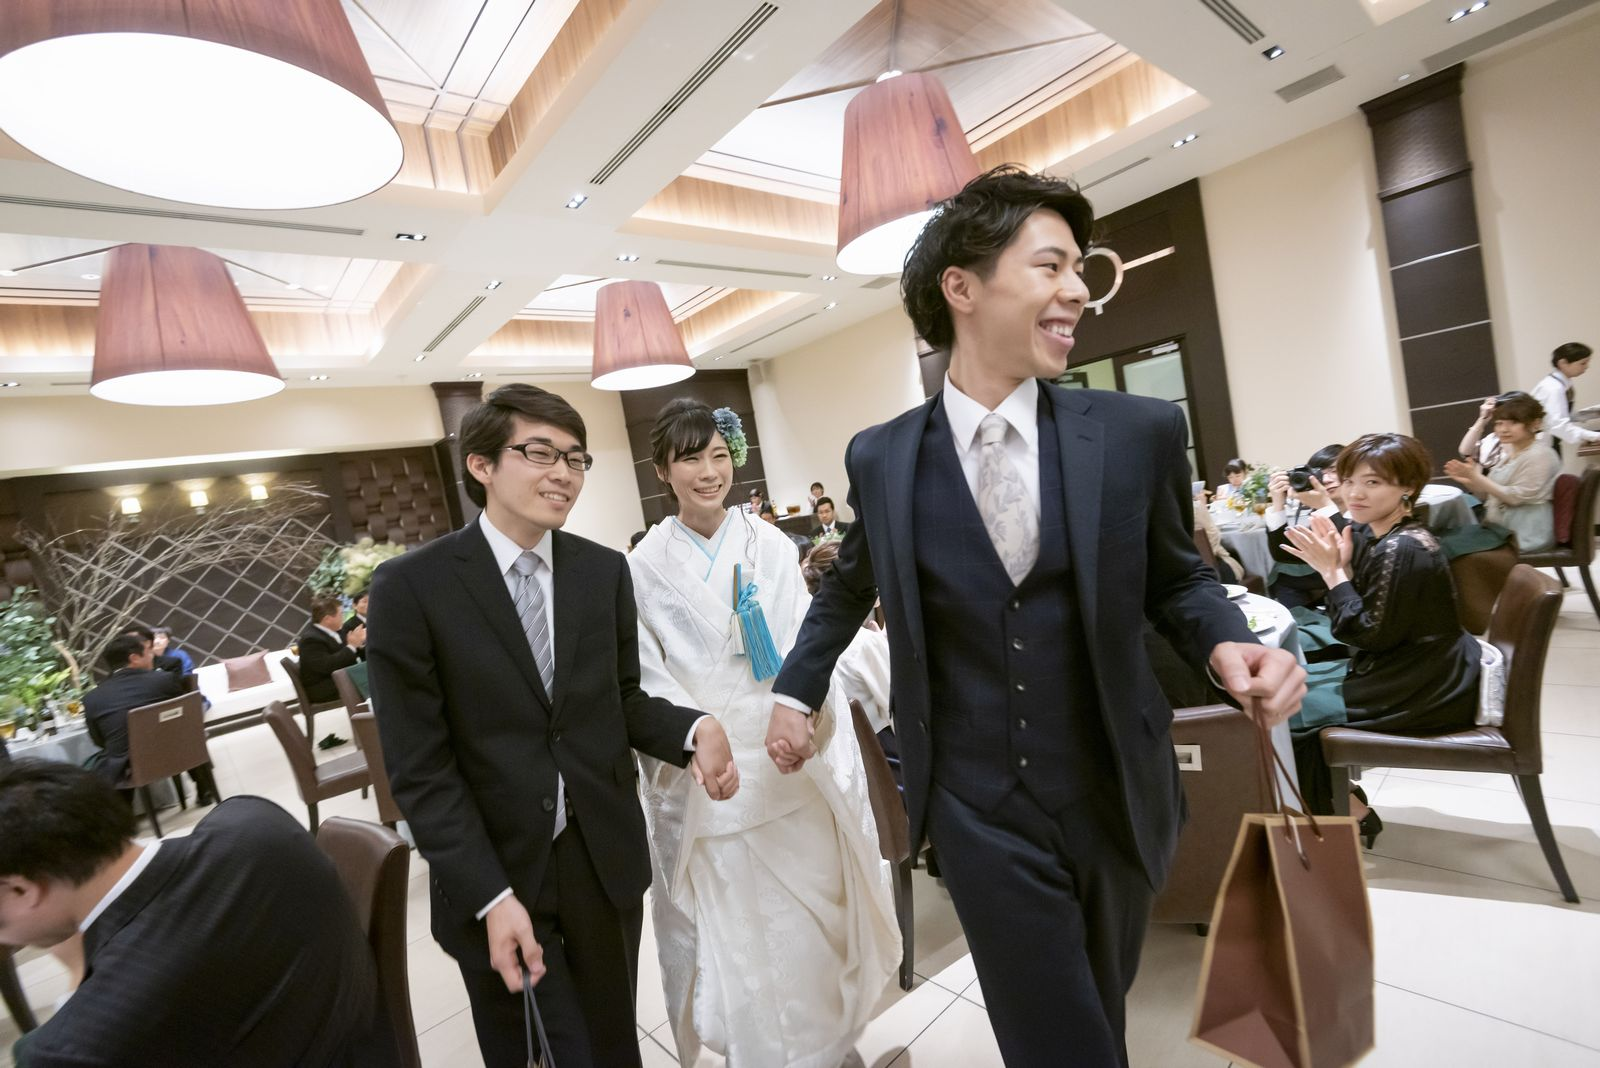 高松市の結婚式場アイルバレクラブ 中座